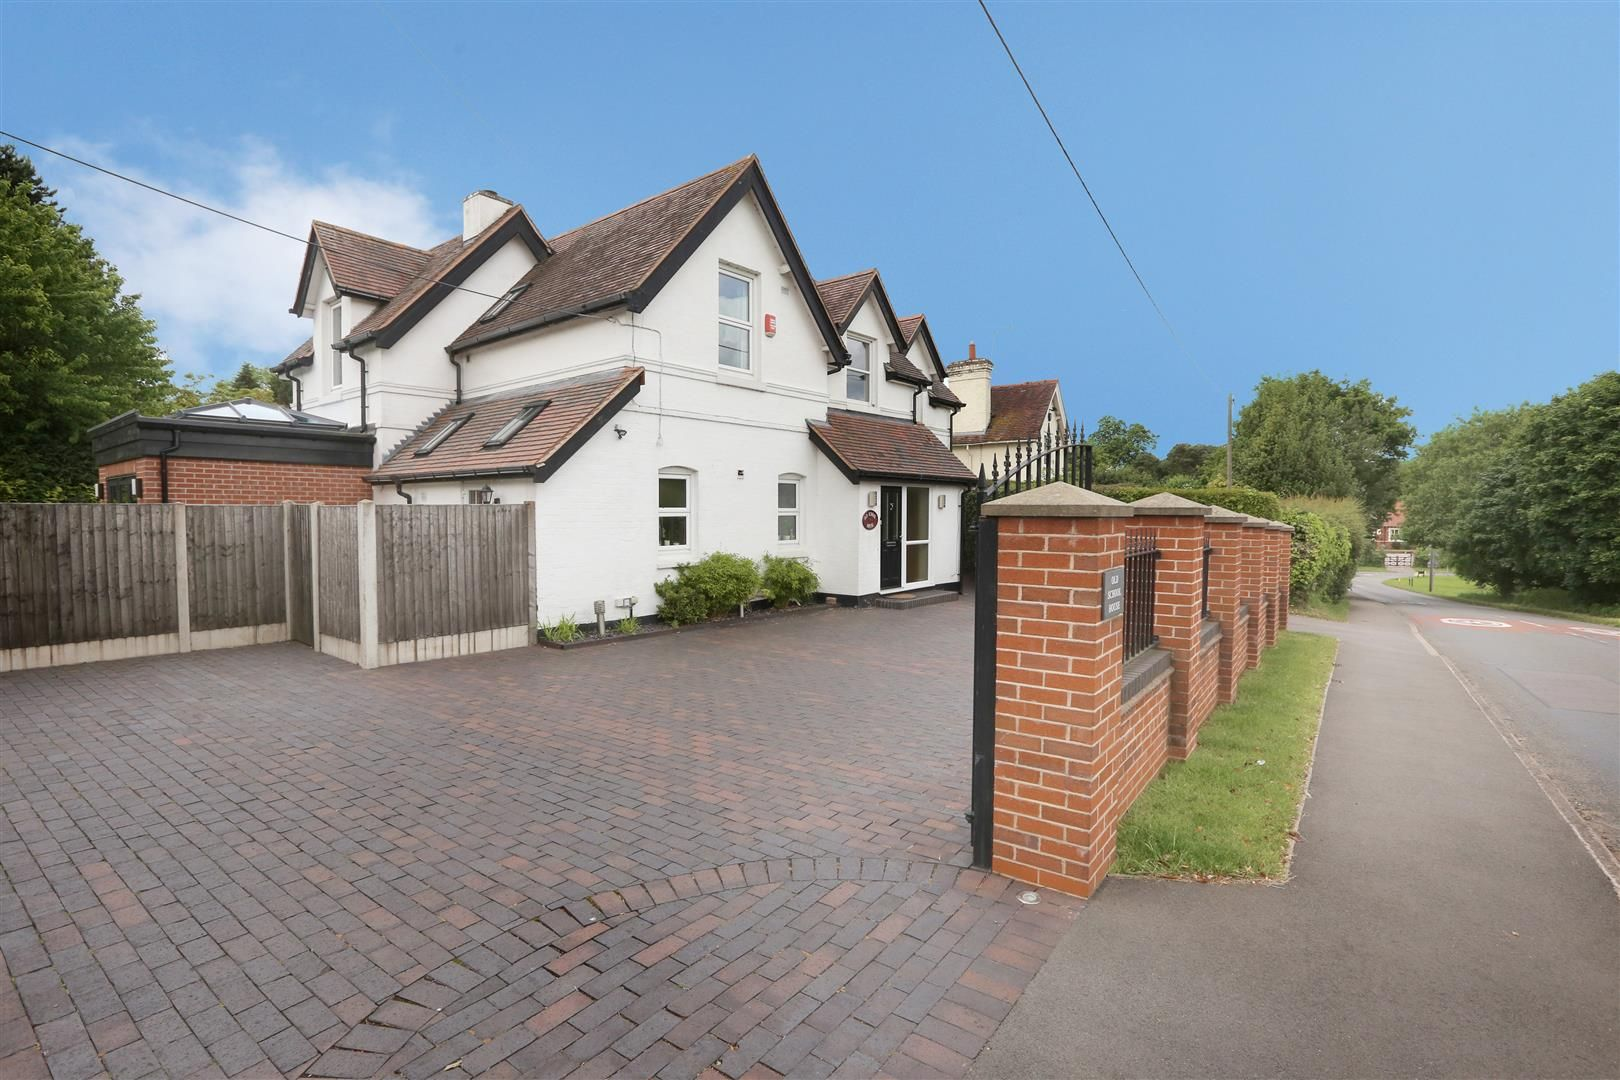 4 bed house for sale in Churchill  - Property Image 34